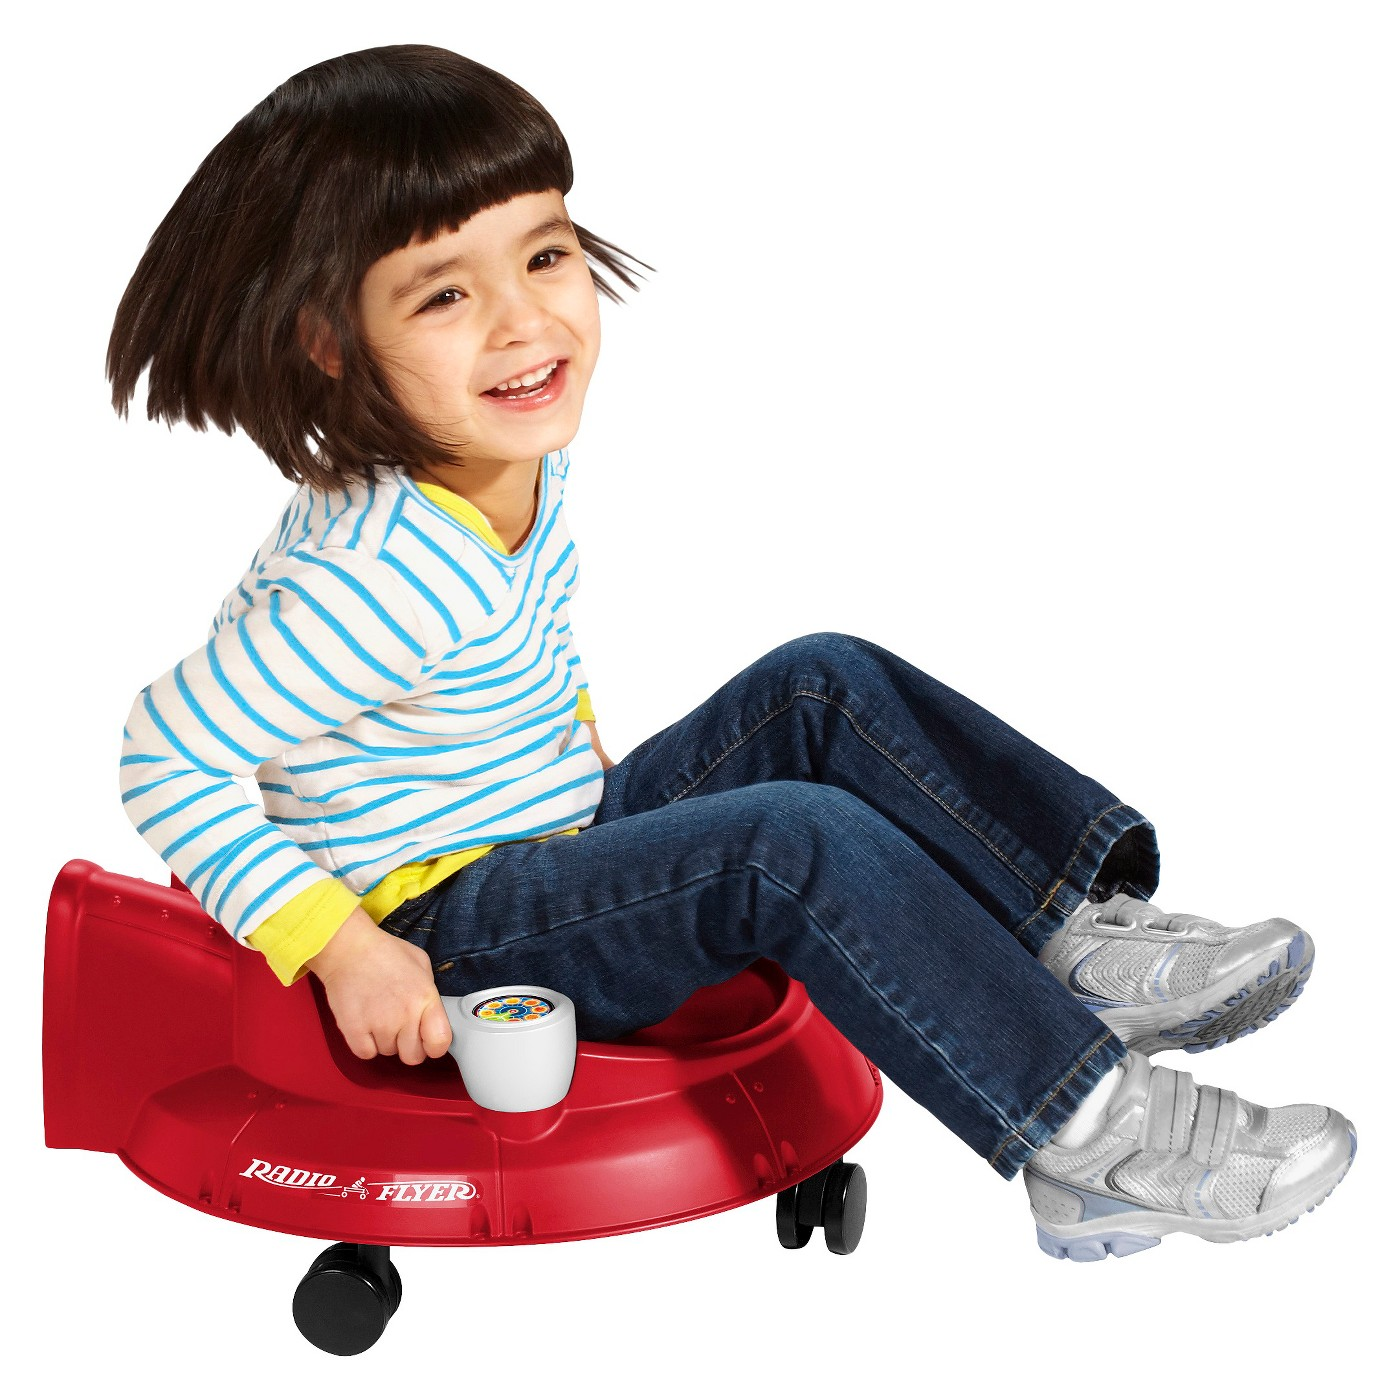 Radio Flyer Red Spin N Saucer - image 1 of 5